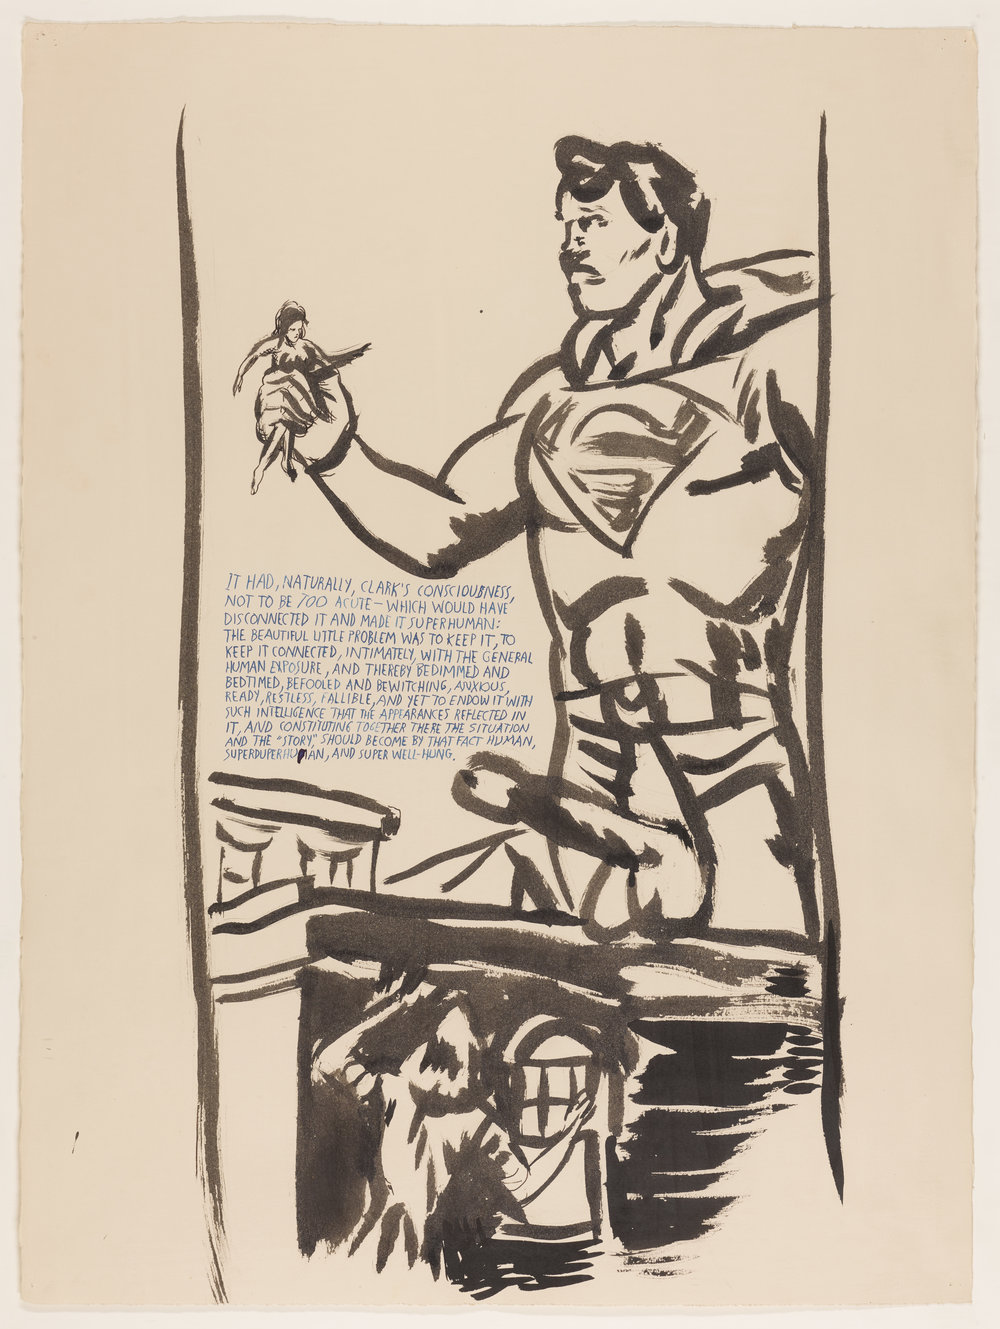 Lot 75 Raymond Pettibon, Untitled (It had Naturally…), ink on paper, 1999 (est. £10,000-15,000).